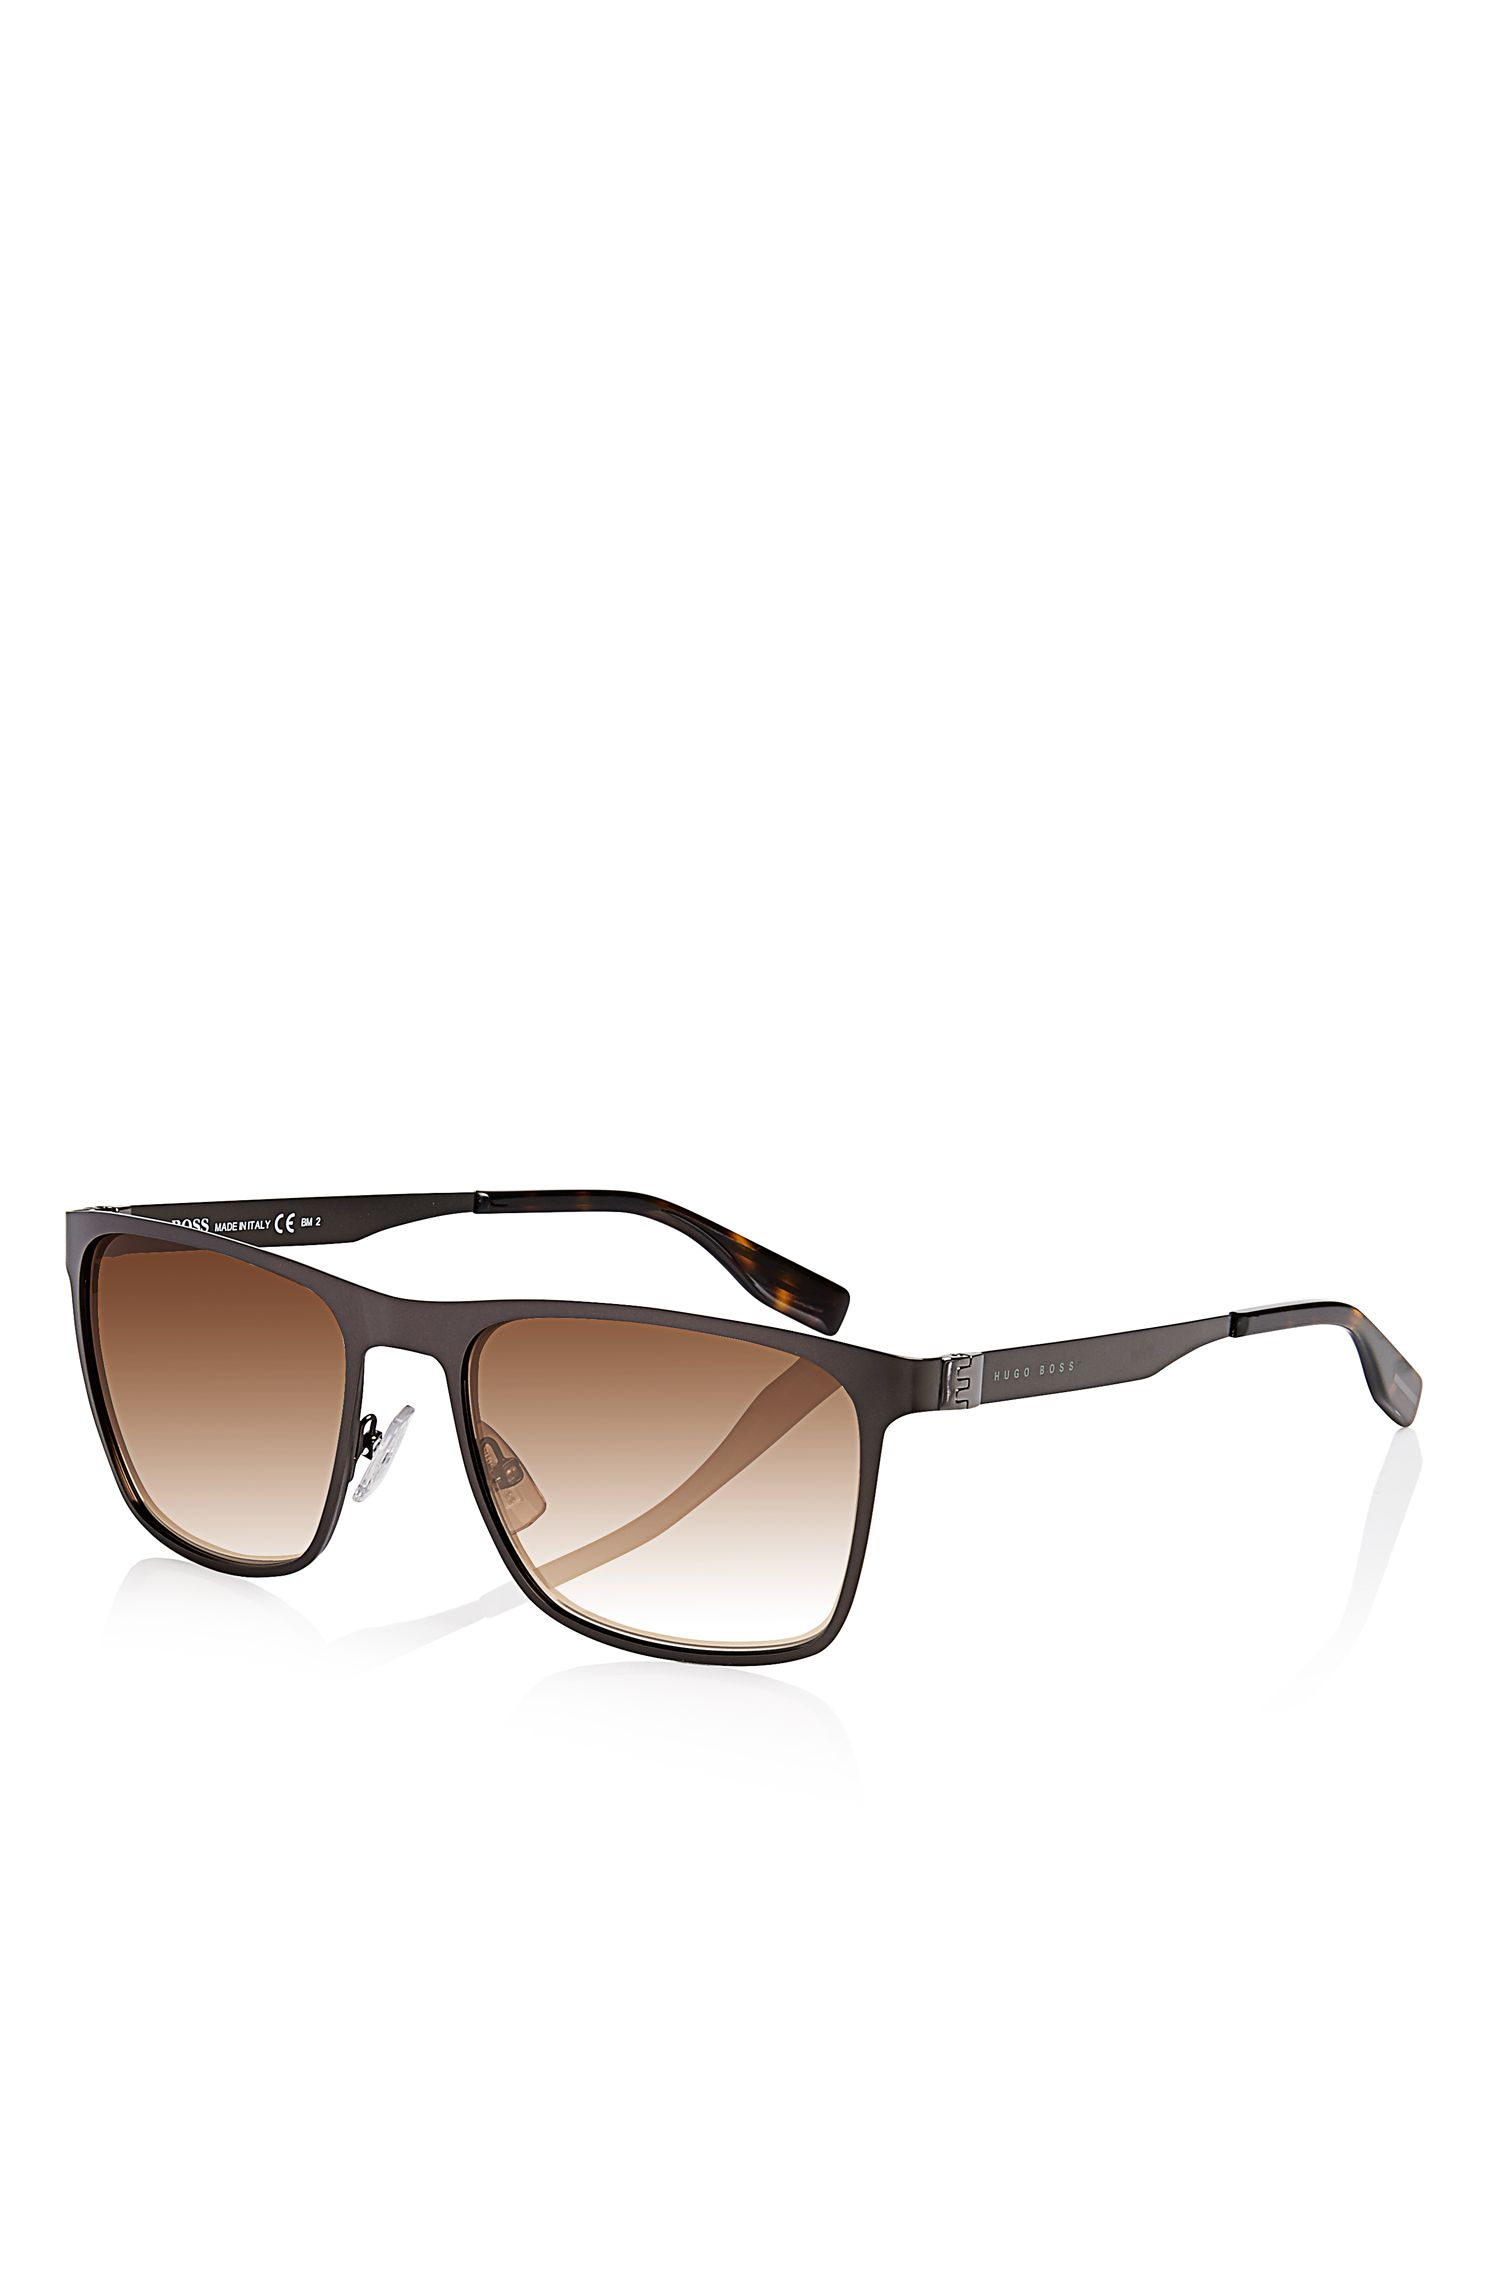 'Sunglasses' | Dark Ruthenium Flat Metal Sunglasses